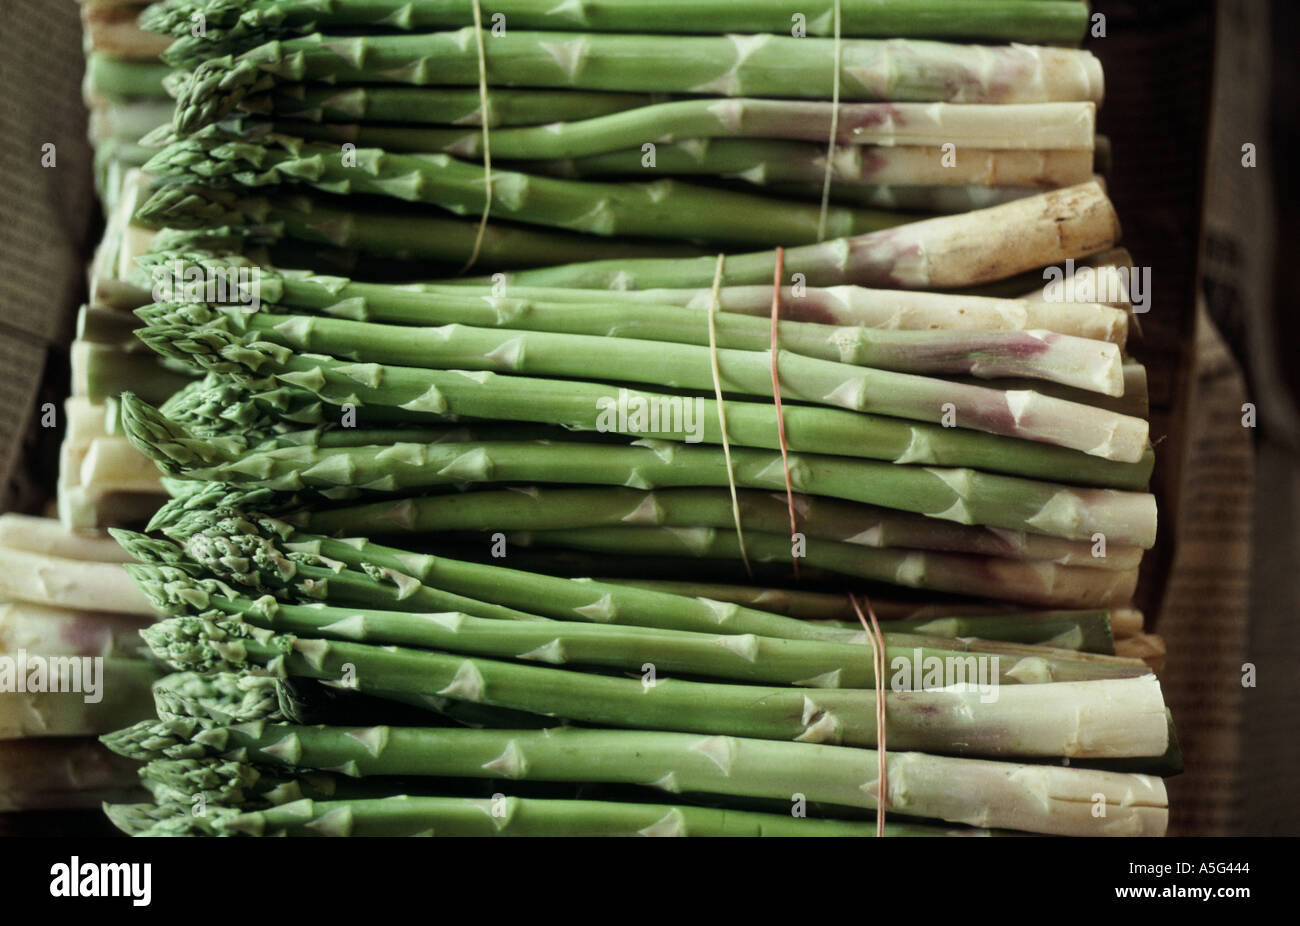 Bundles Of Cut Green Asparagus Tied And Ready To Cook In Thailand Fresh  From The Farm